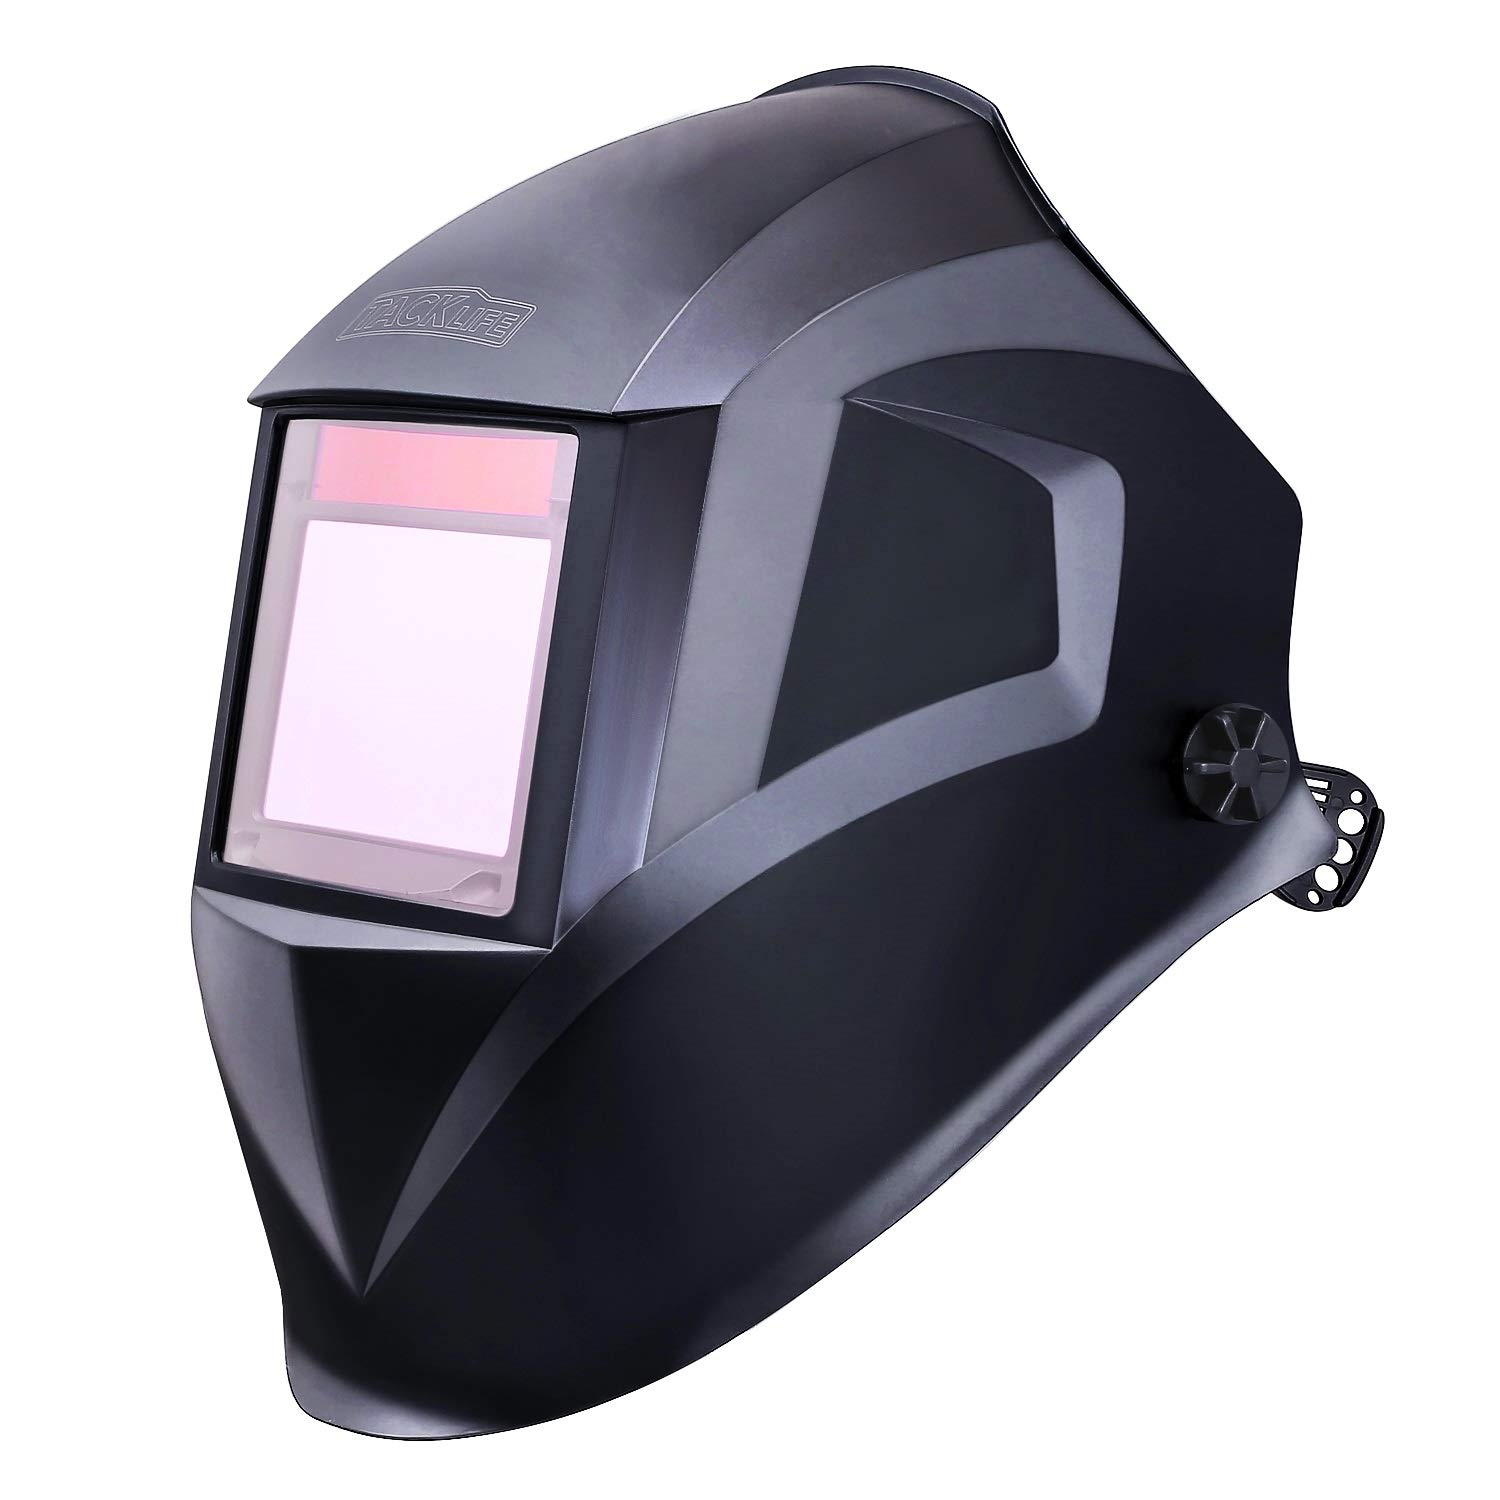 Pro Welding Helmet with Highest Optical Class (1/1/1/1), Larger Viewing Area(3.94''x2.87''), Wide Shade Range DIN 3/4-8/9-13, 6Pcs Replacement Lenses, Grinding Feature for TIG MIG MMA Plasma - PAH03D